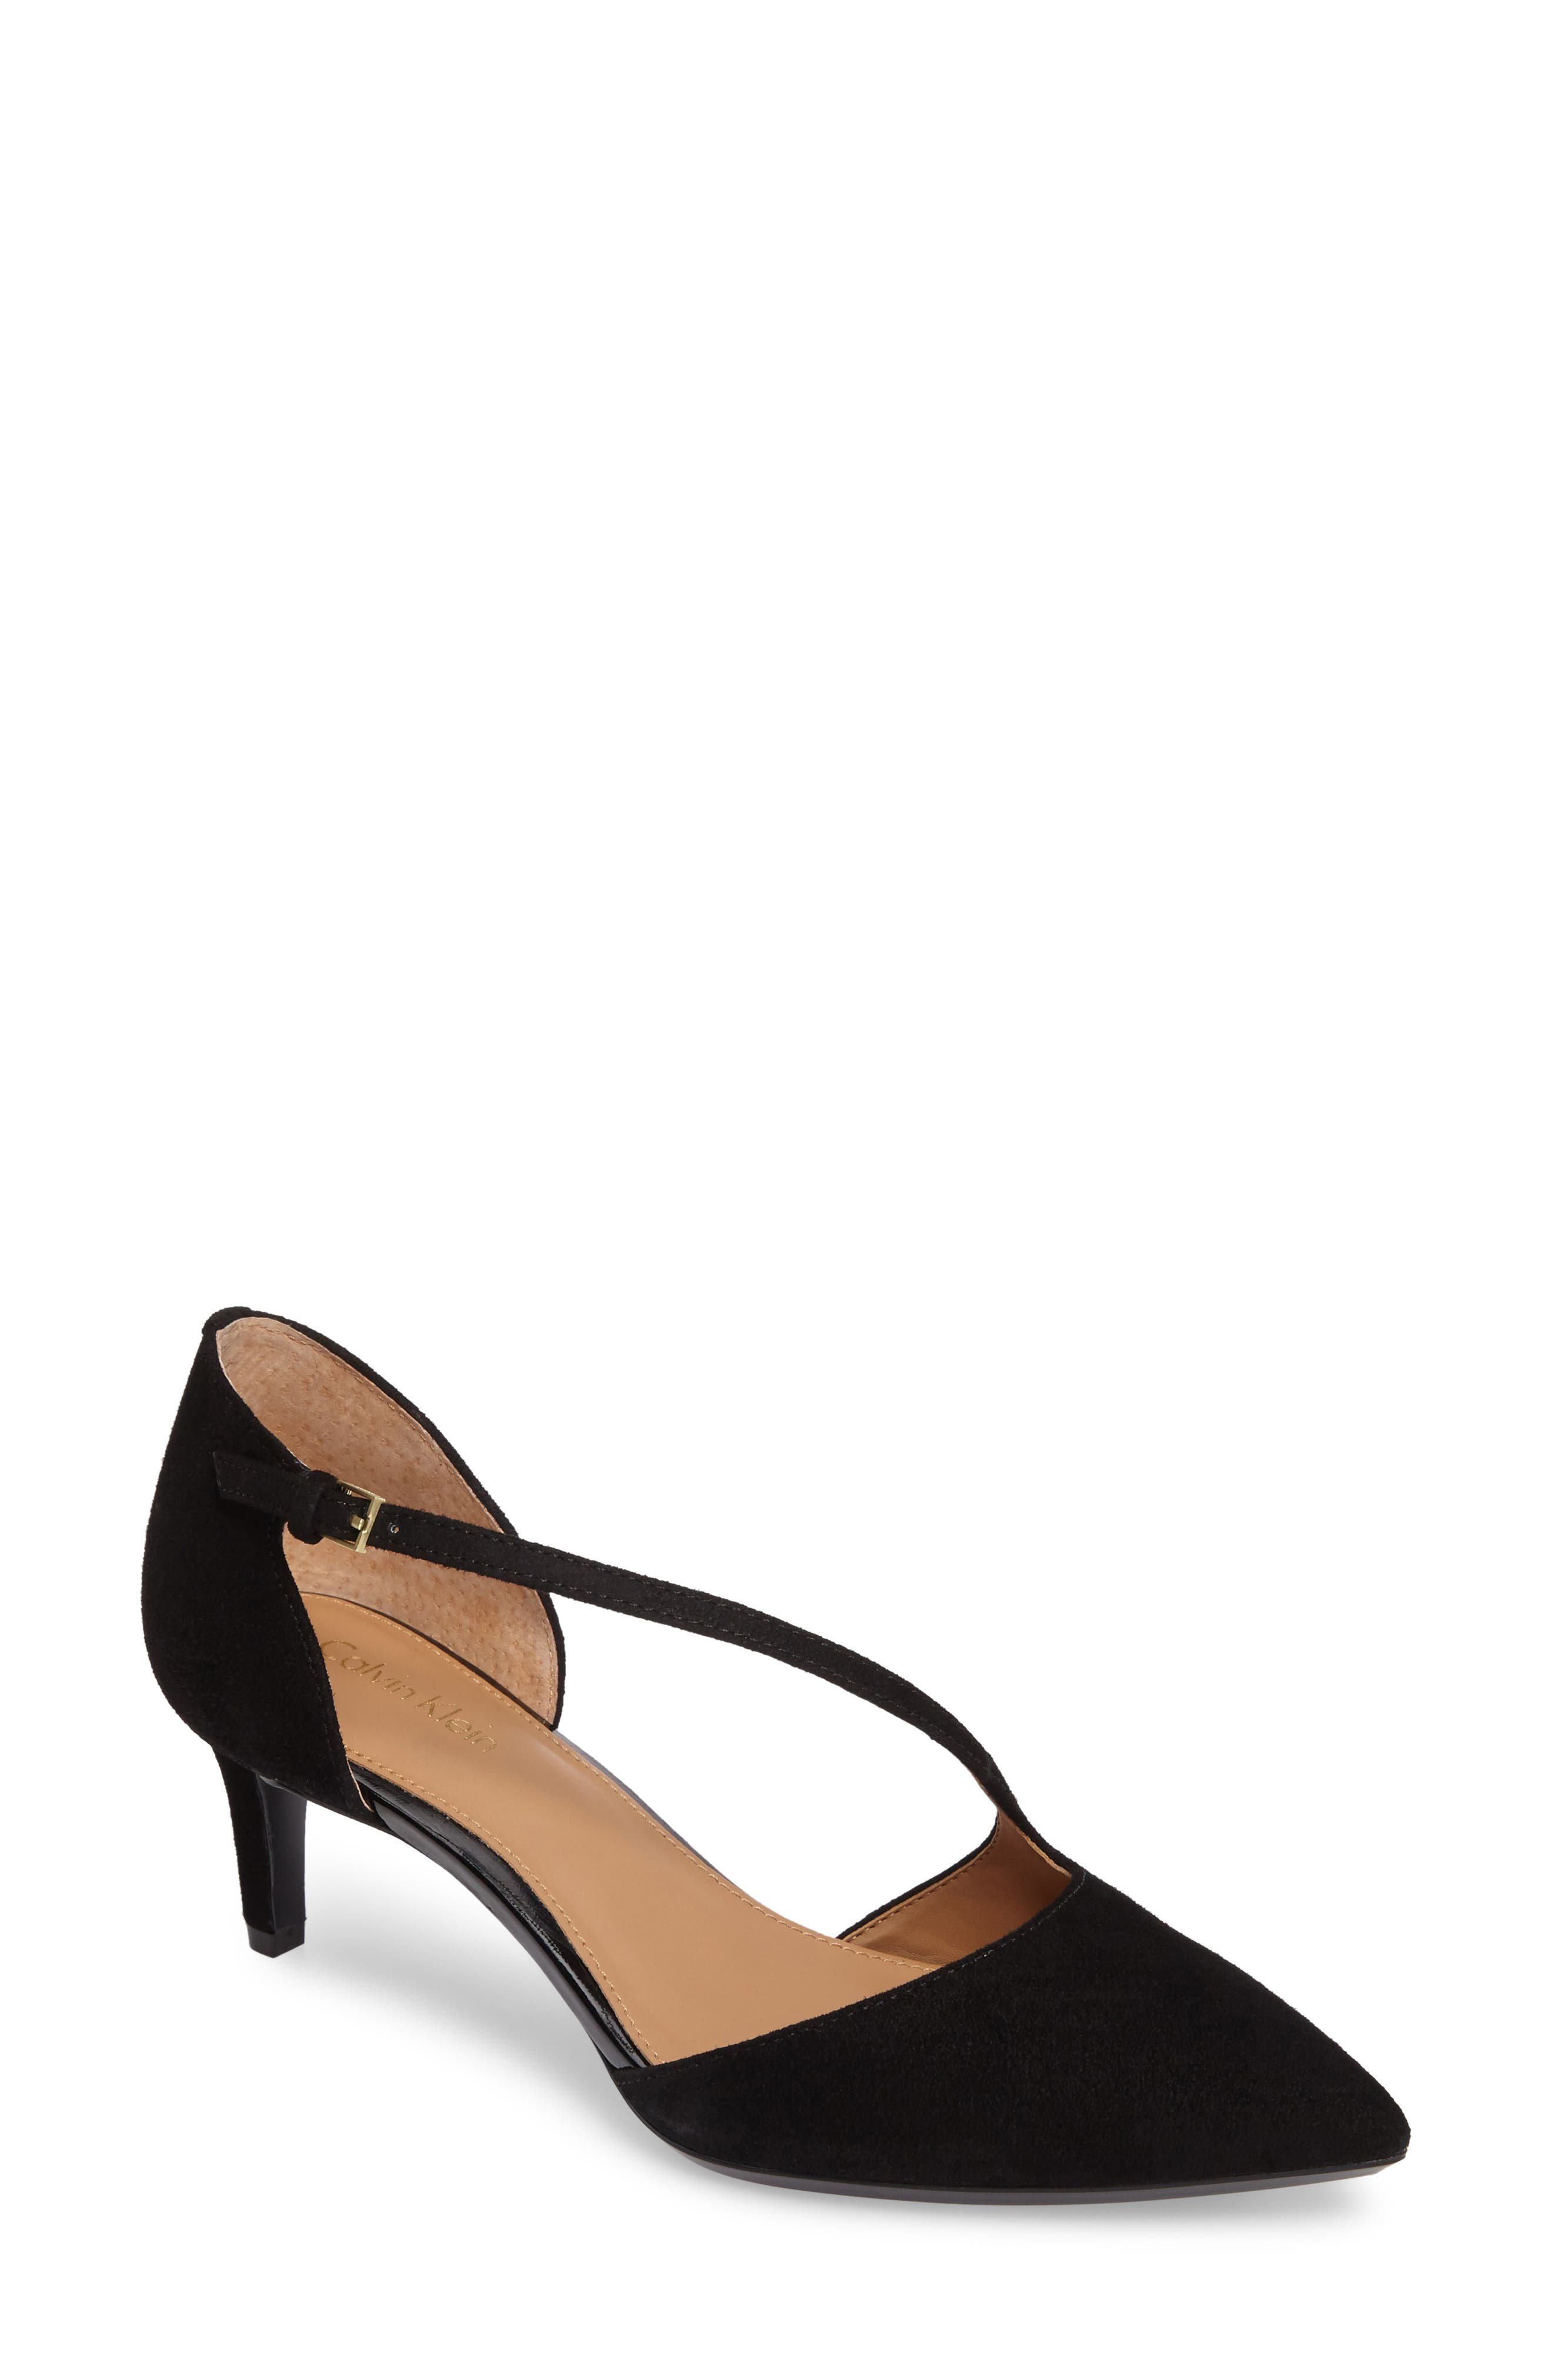 Alternate Image 1 Selected - Calvin Klein Page Pointy Toe Pump (Women)